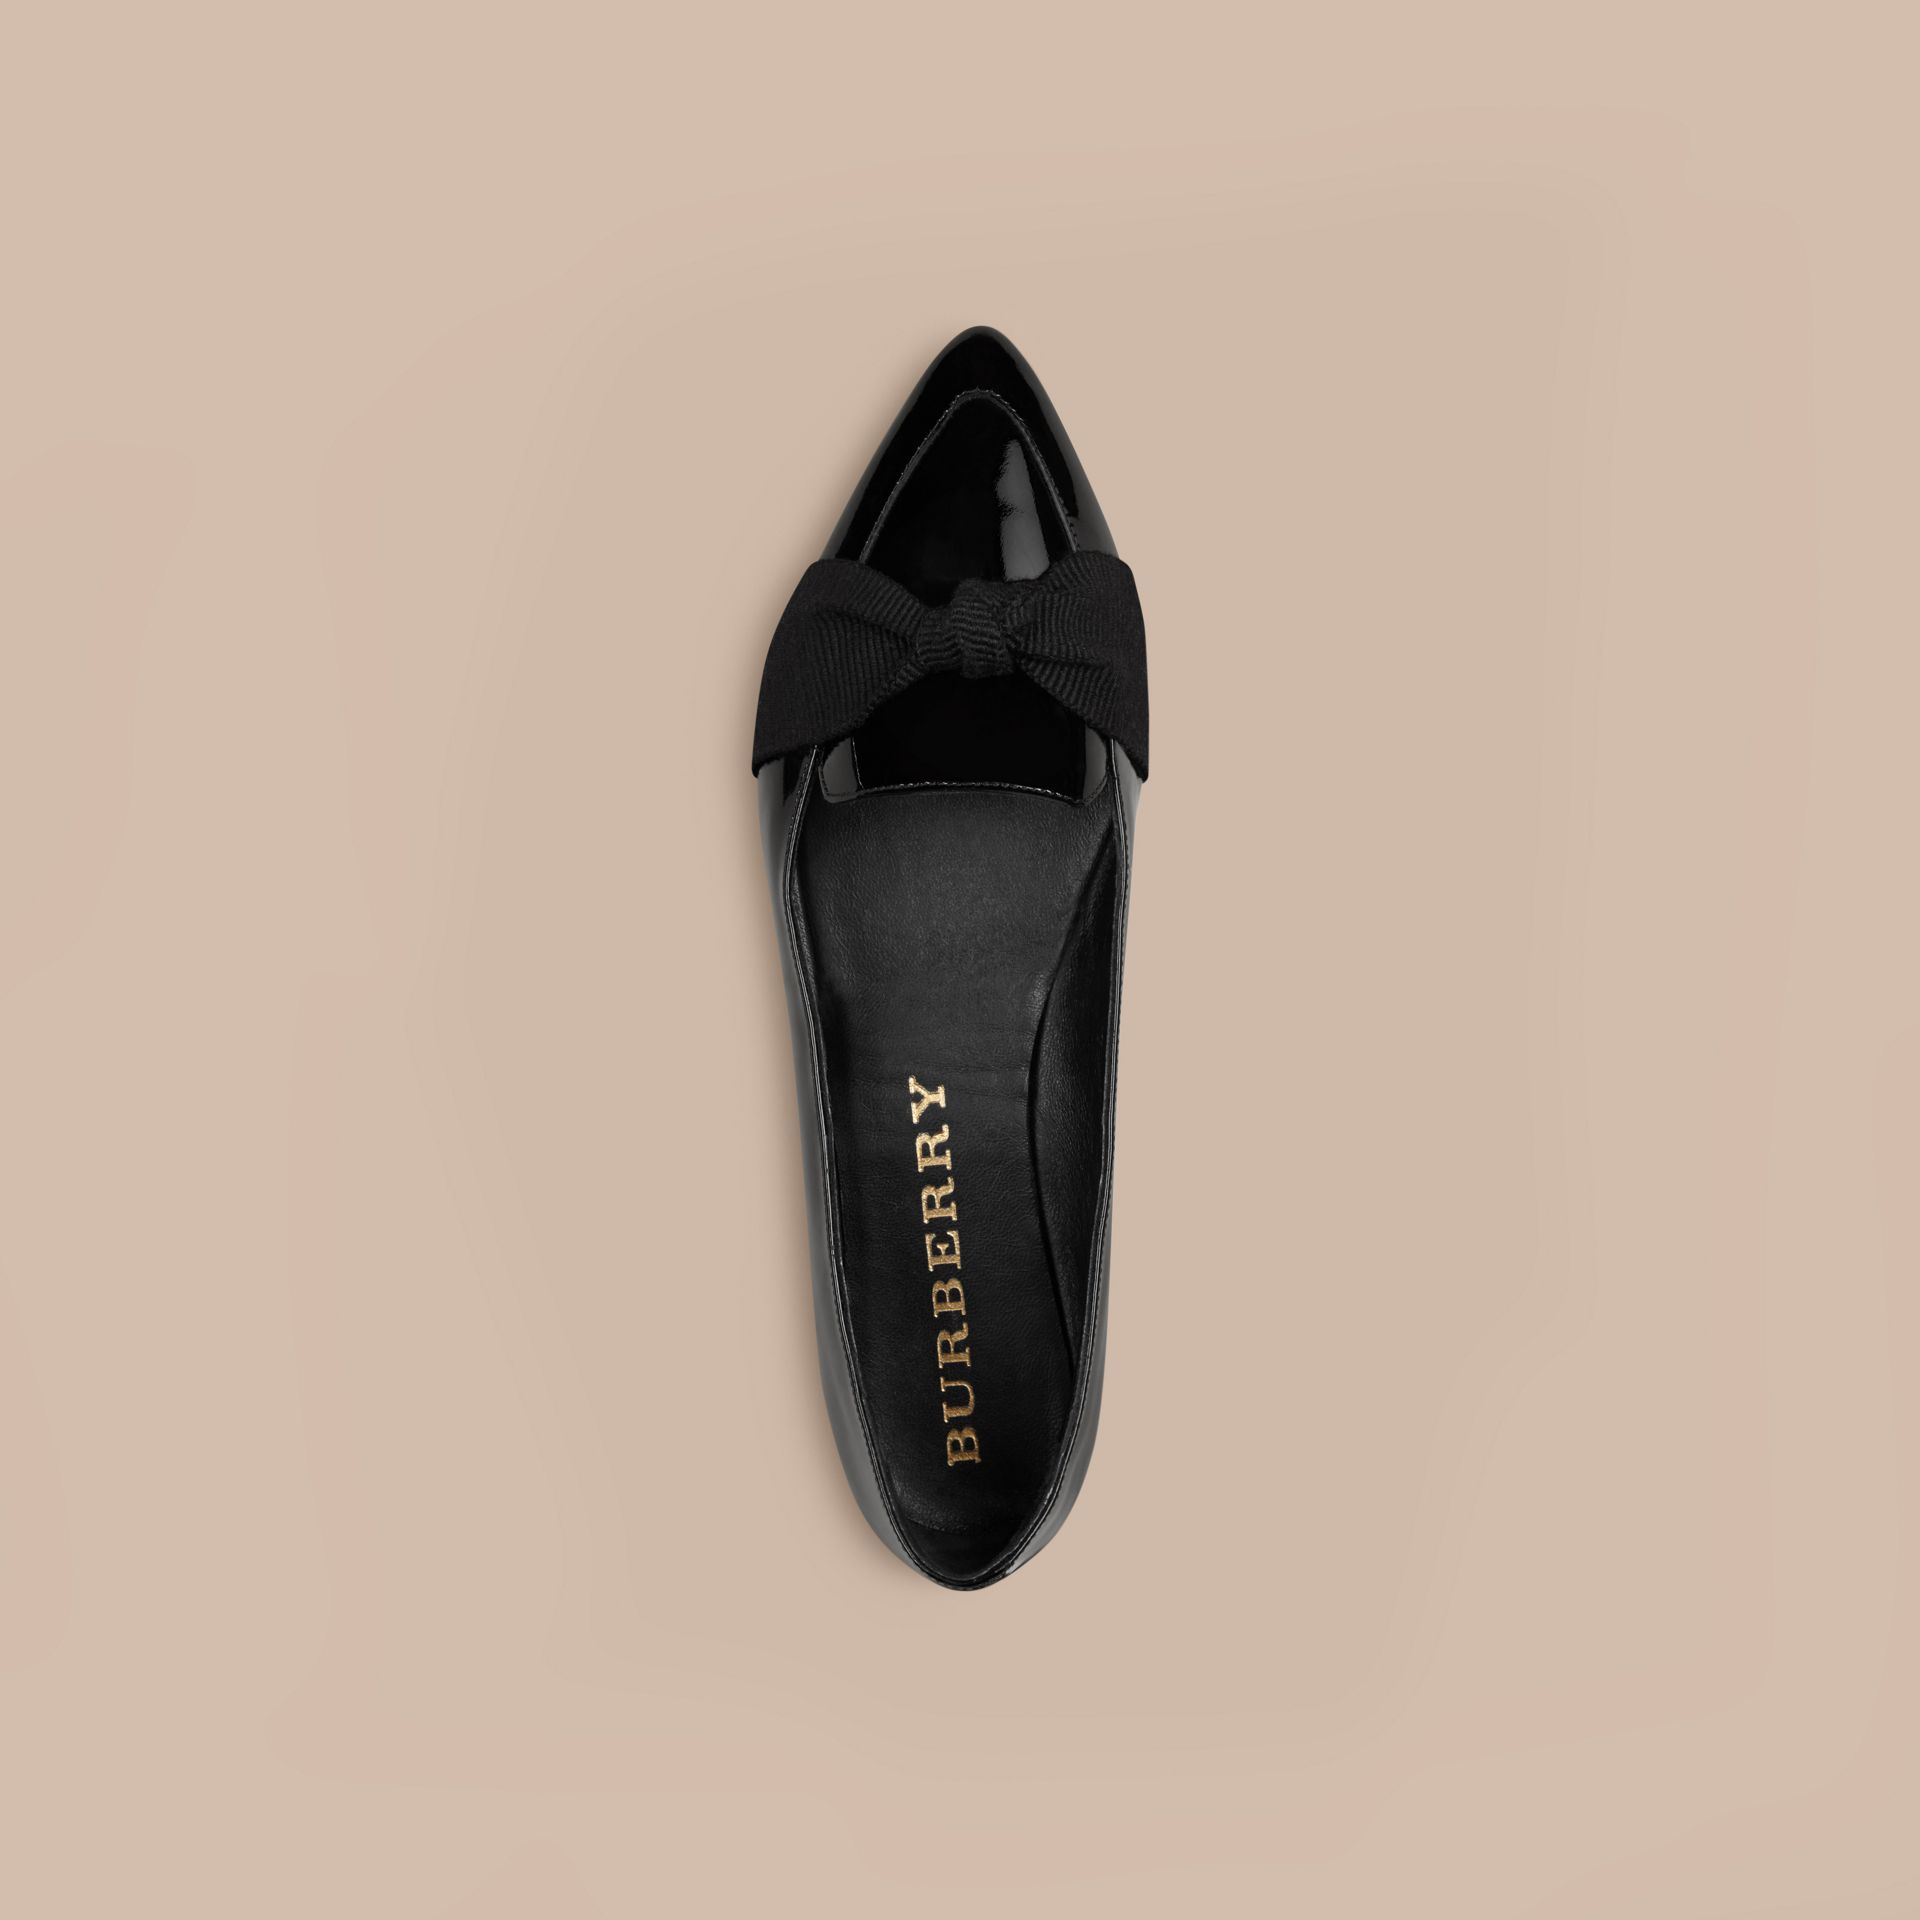 Grosgrain Bow Patent Leather Loafers in Black - Women | Burberry - gallery image 3